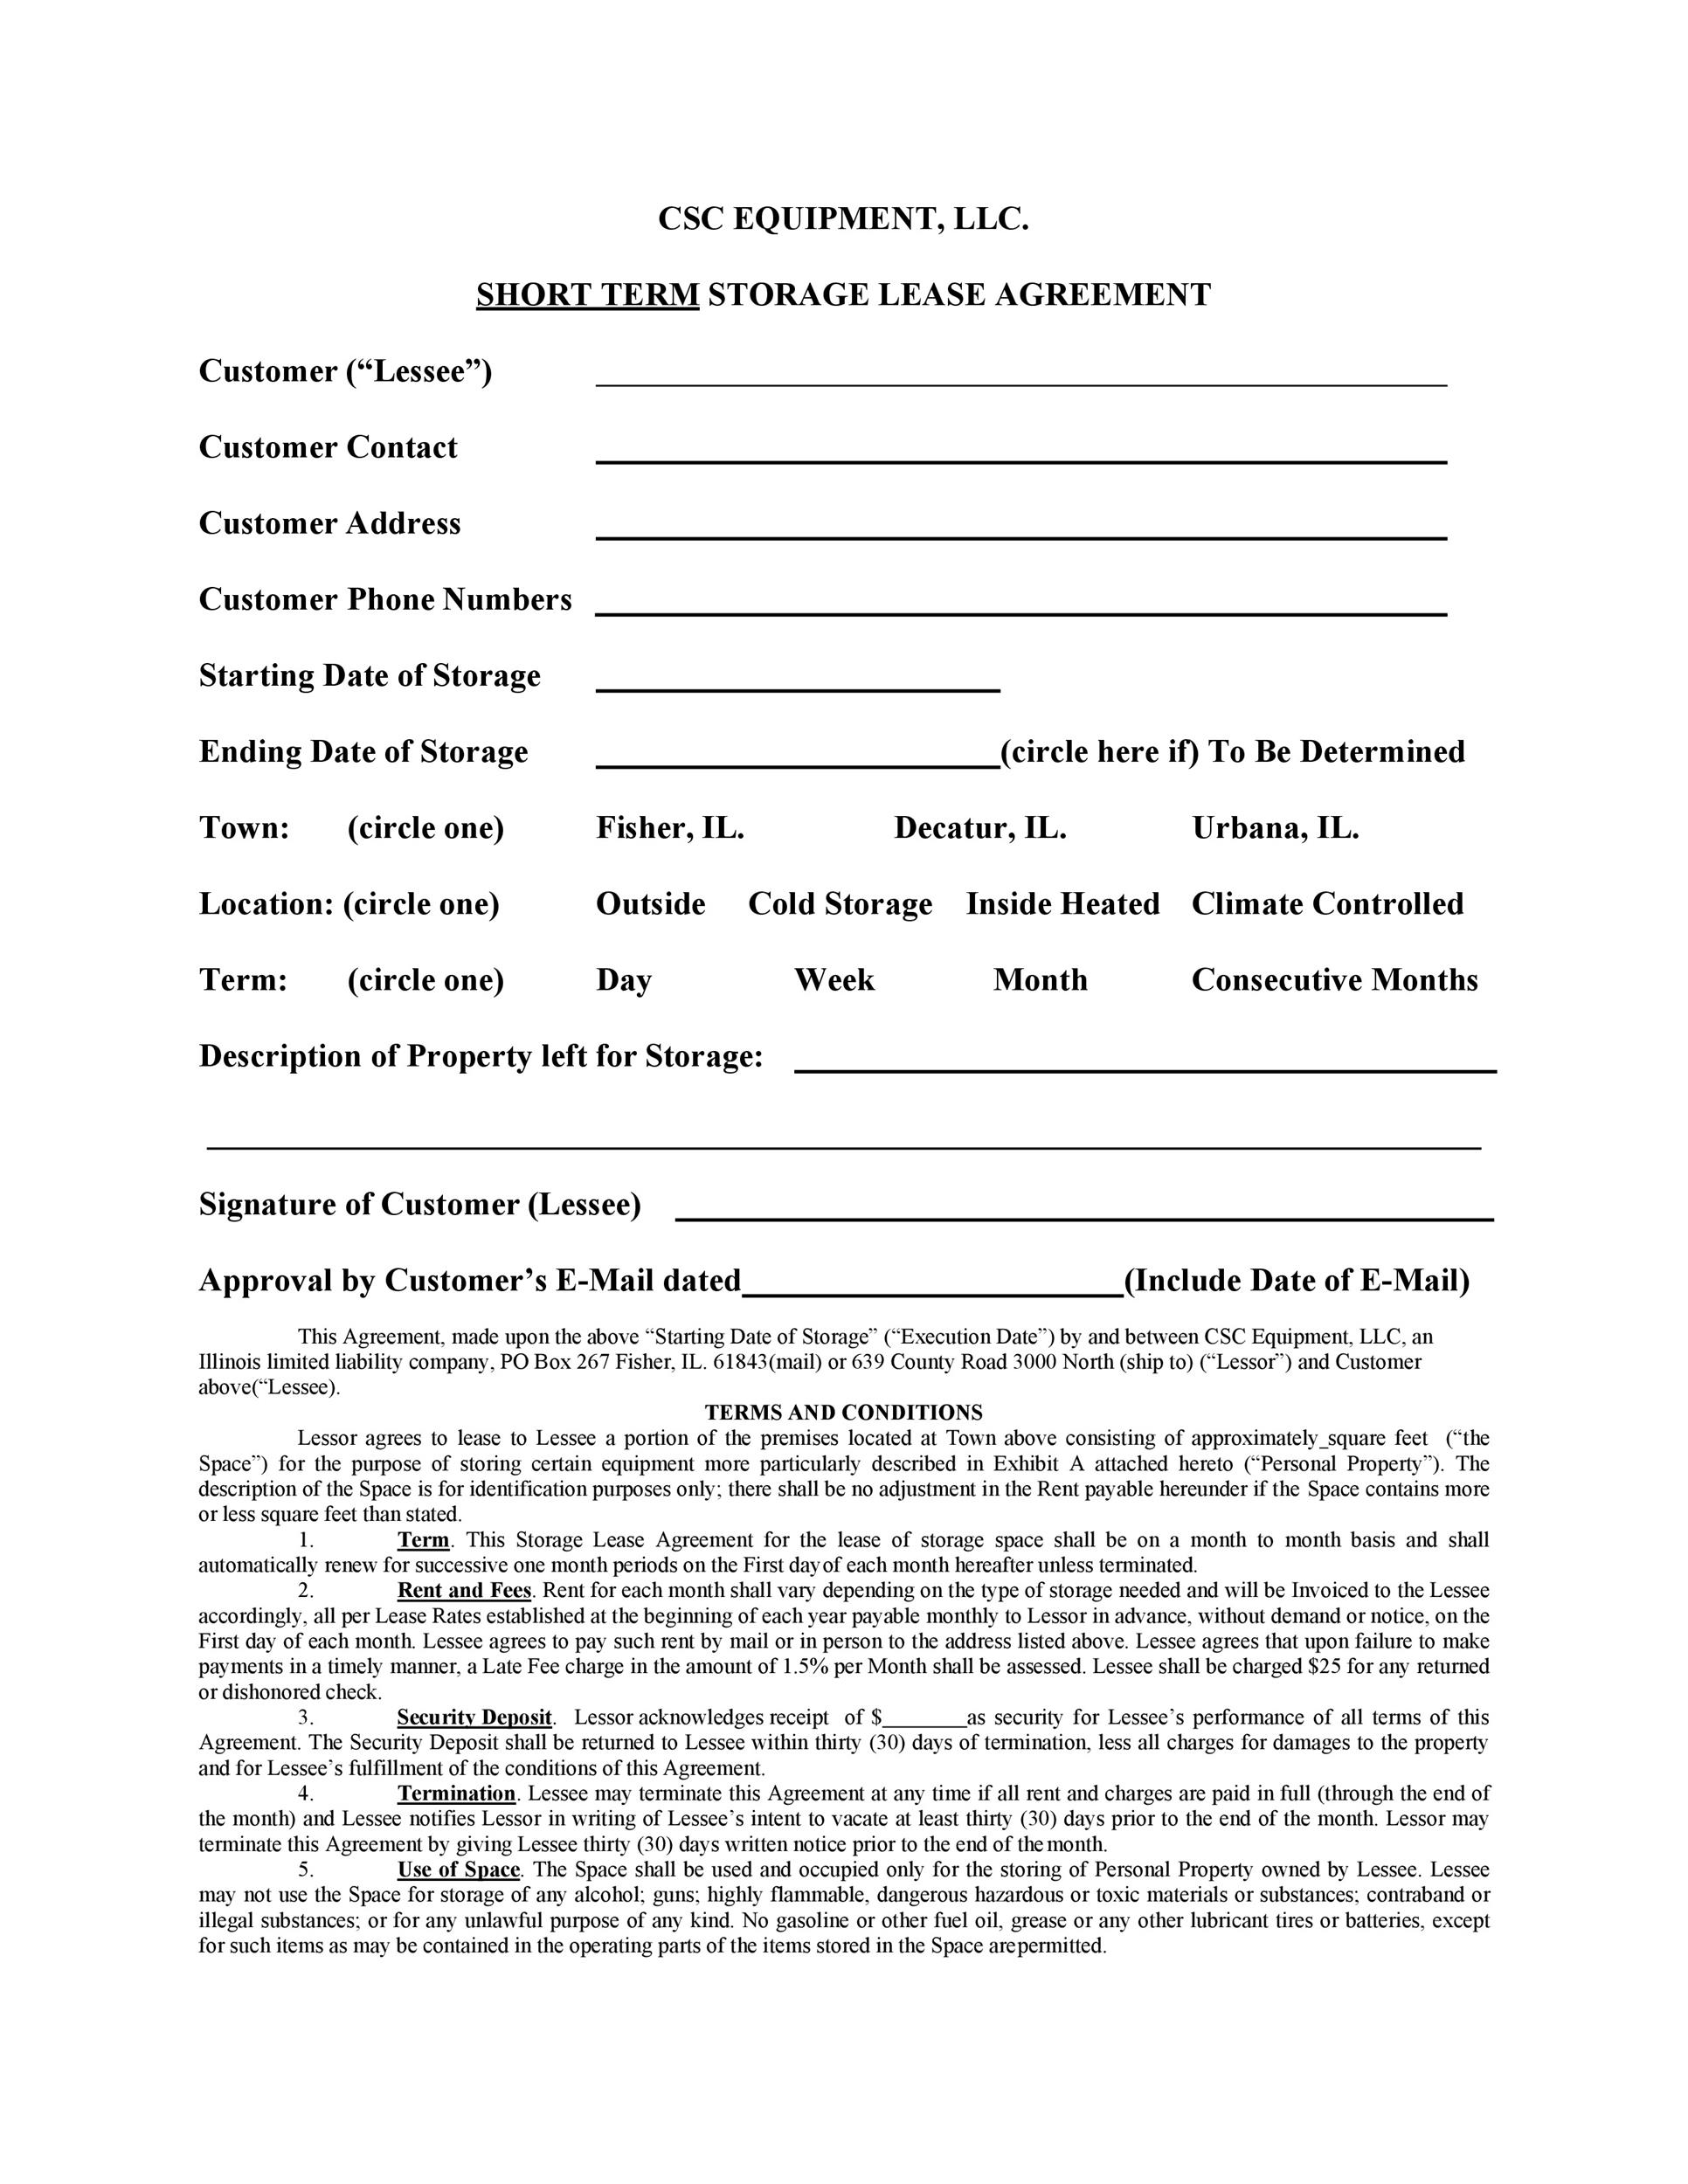 Free equipment lease agreement 25